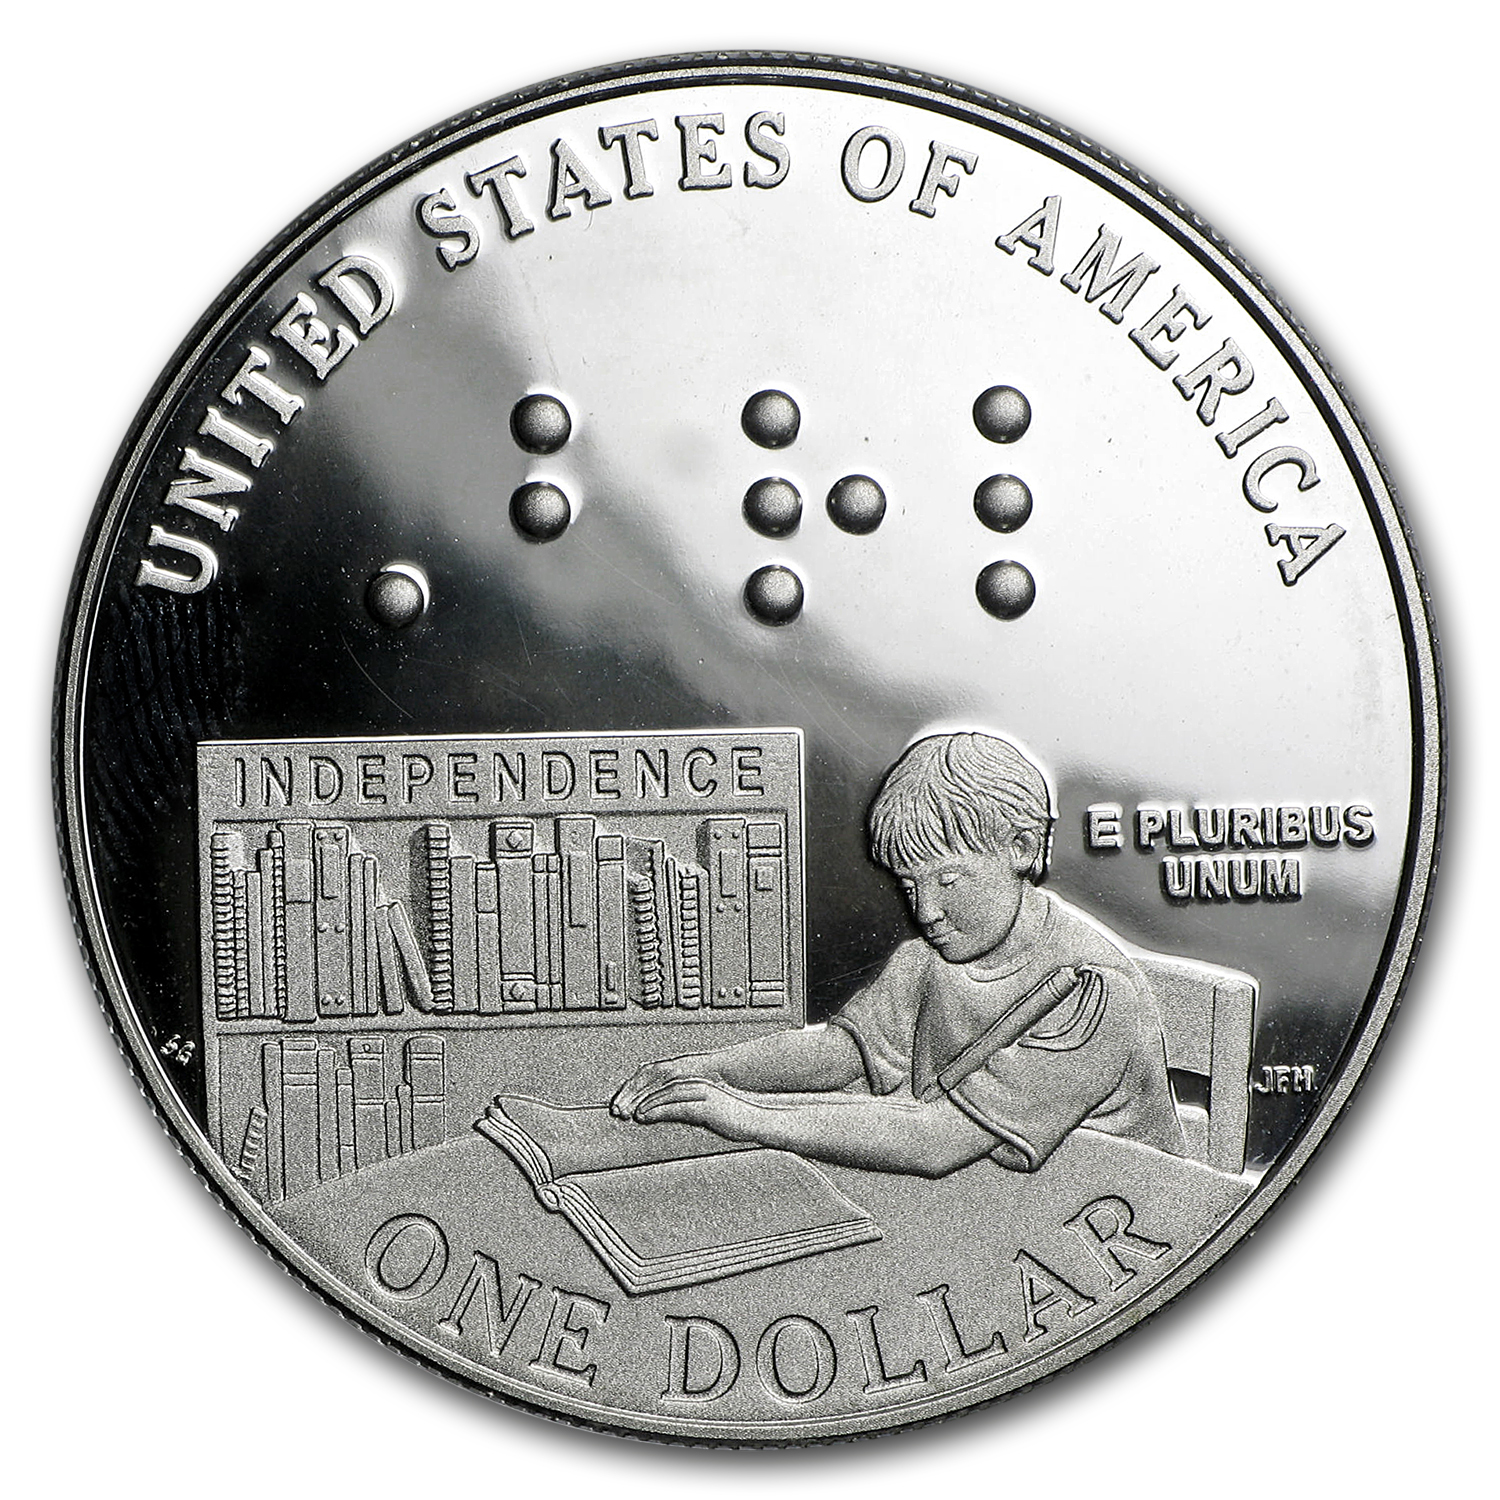 2009-P Louis Braille $1 Silver Commem Proof (w/Box & COA)